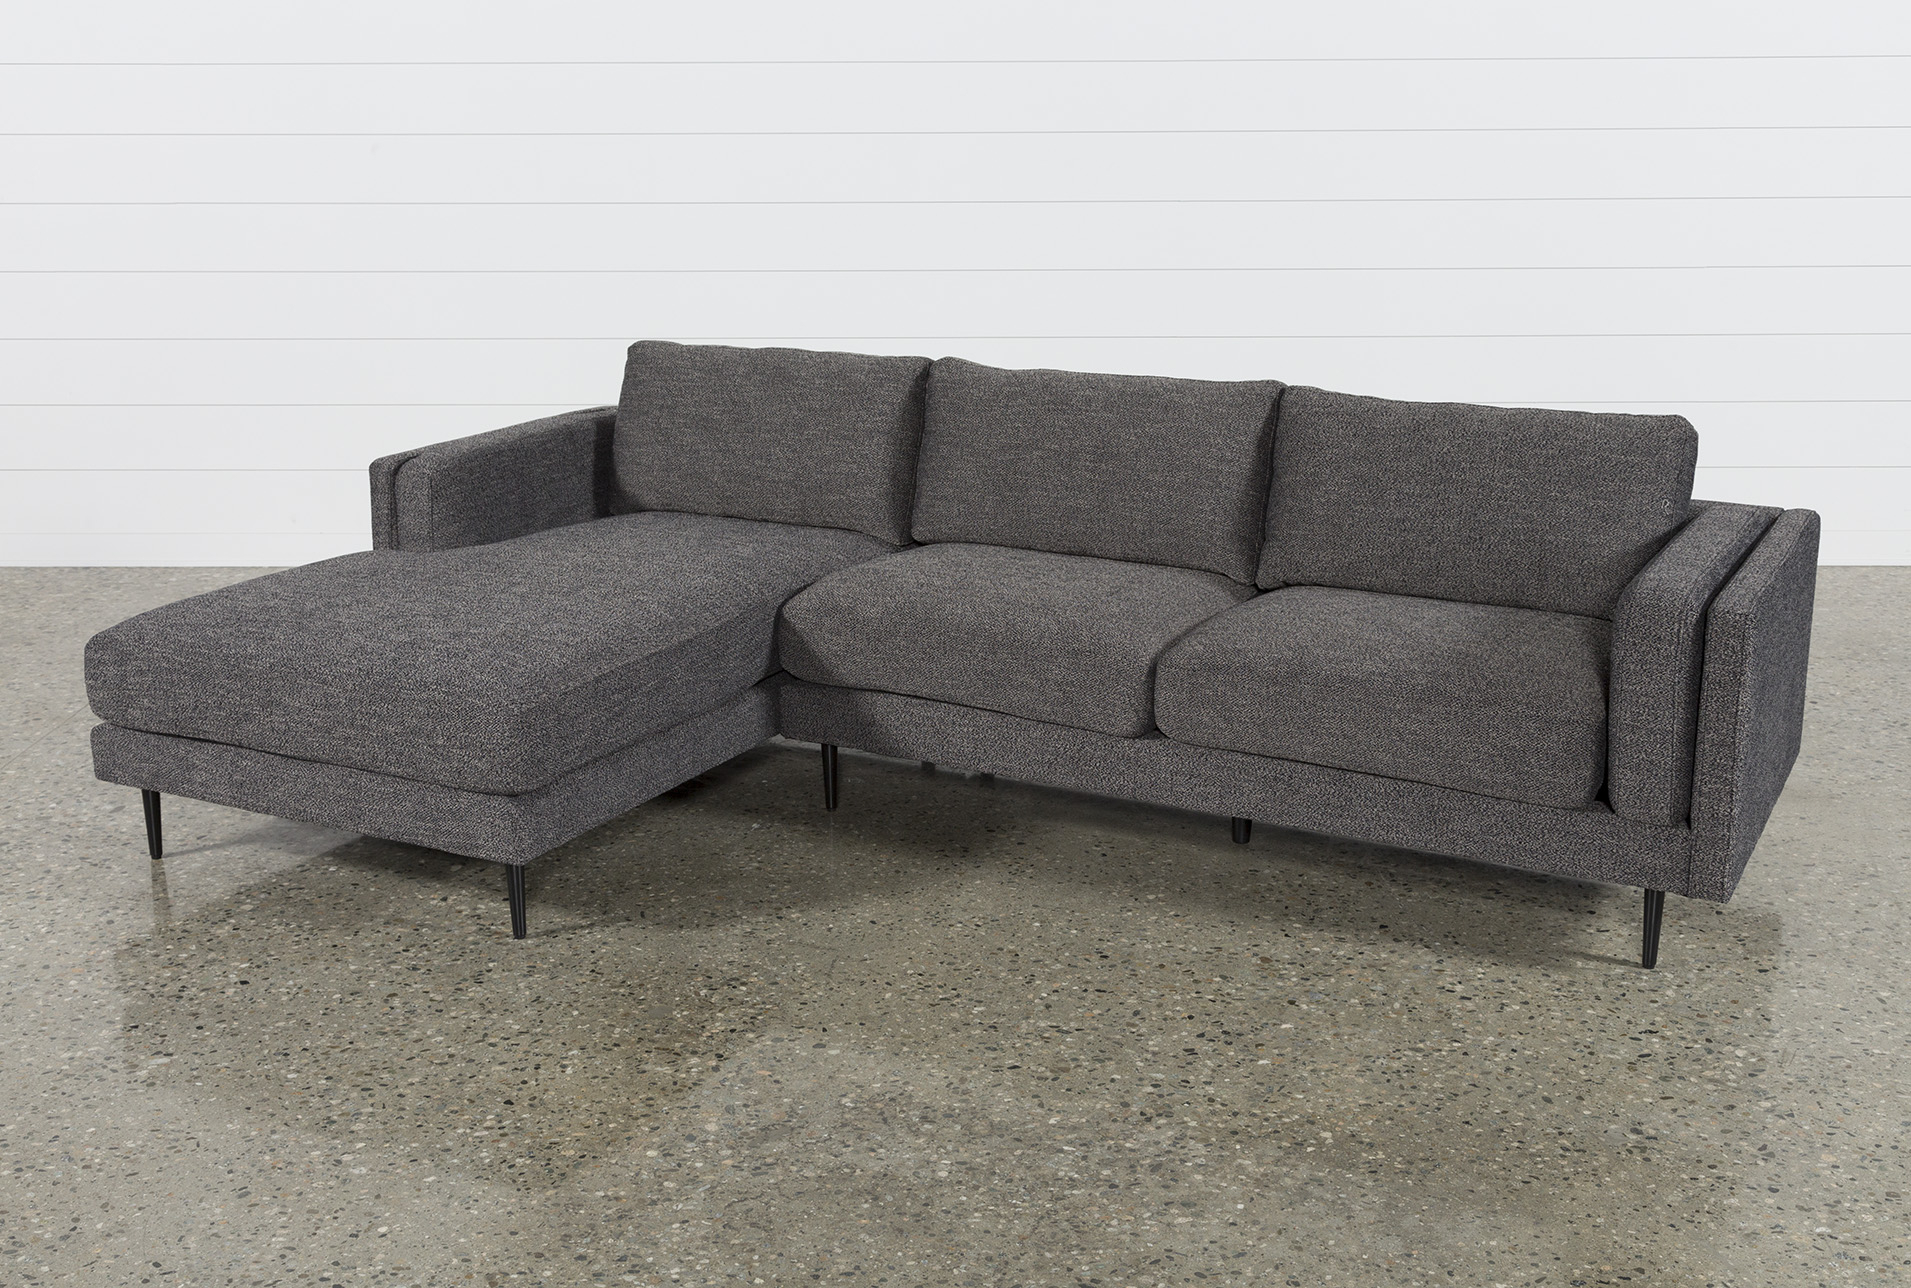 Aquarius Dark Grey 2 Piece Sectional W/laf Chaise In 2018 | Products Throughout Aquarius Dark Grey Sofa Chairs (View 3 of 25)